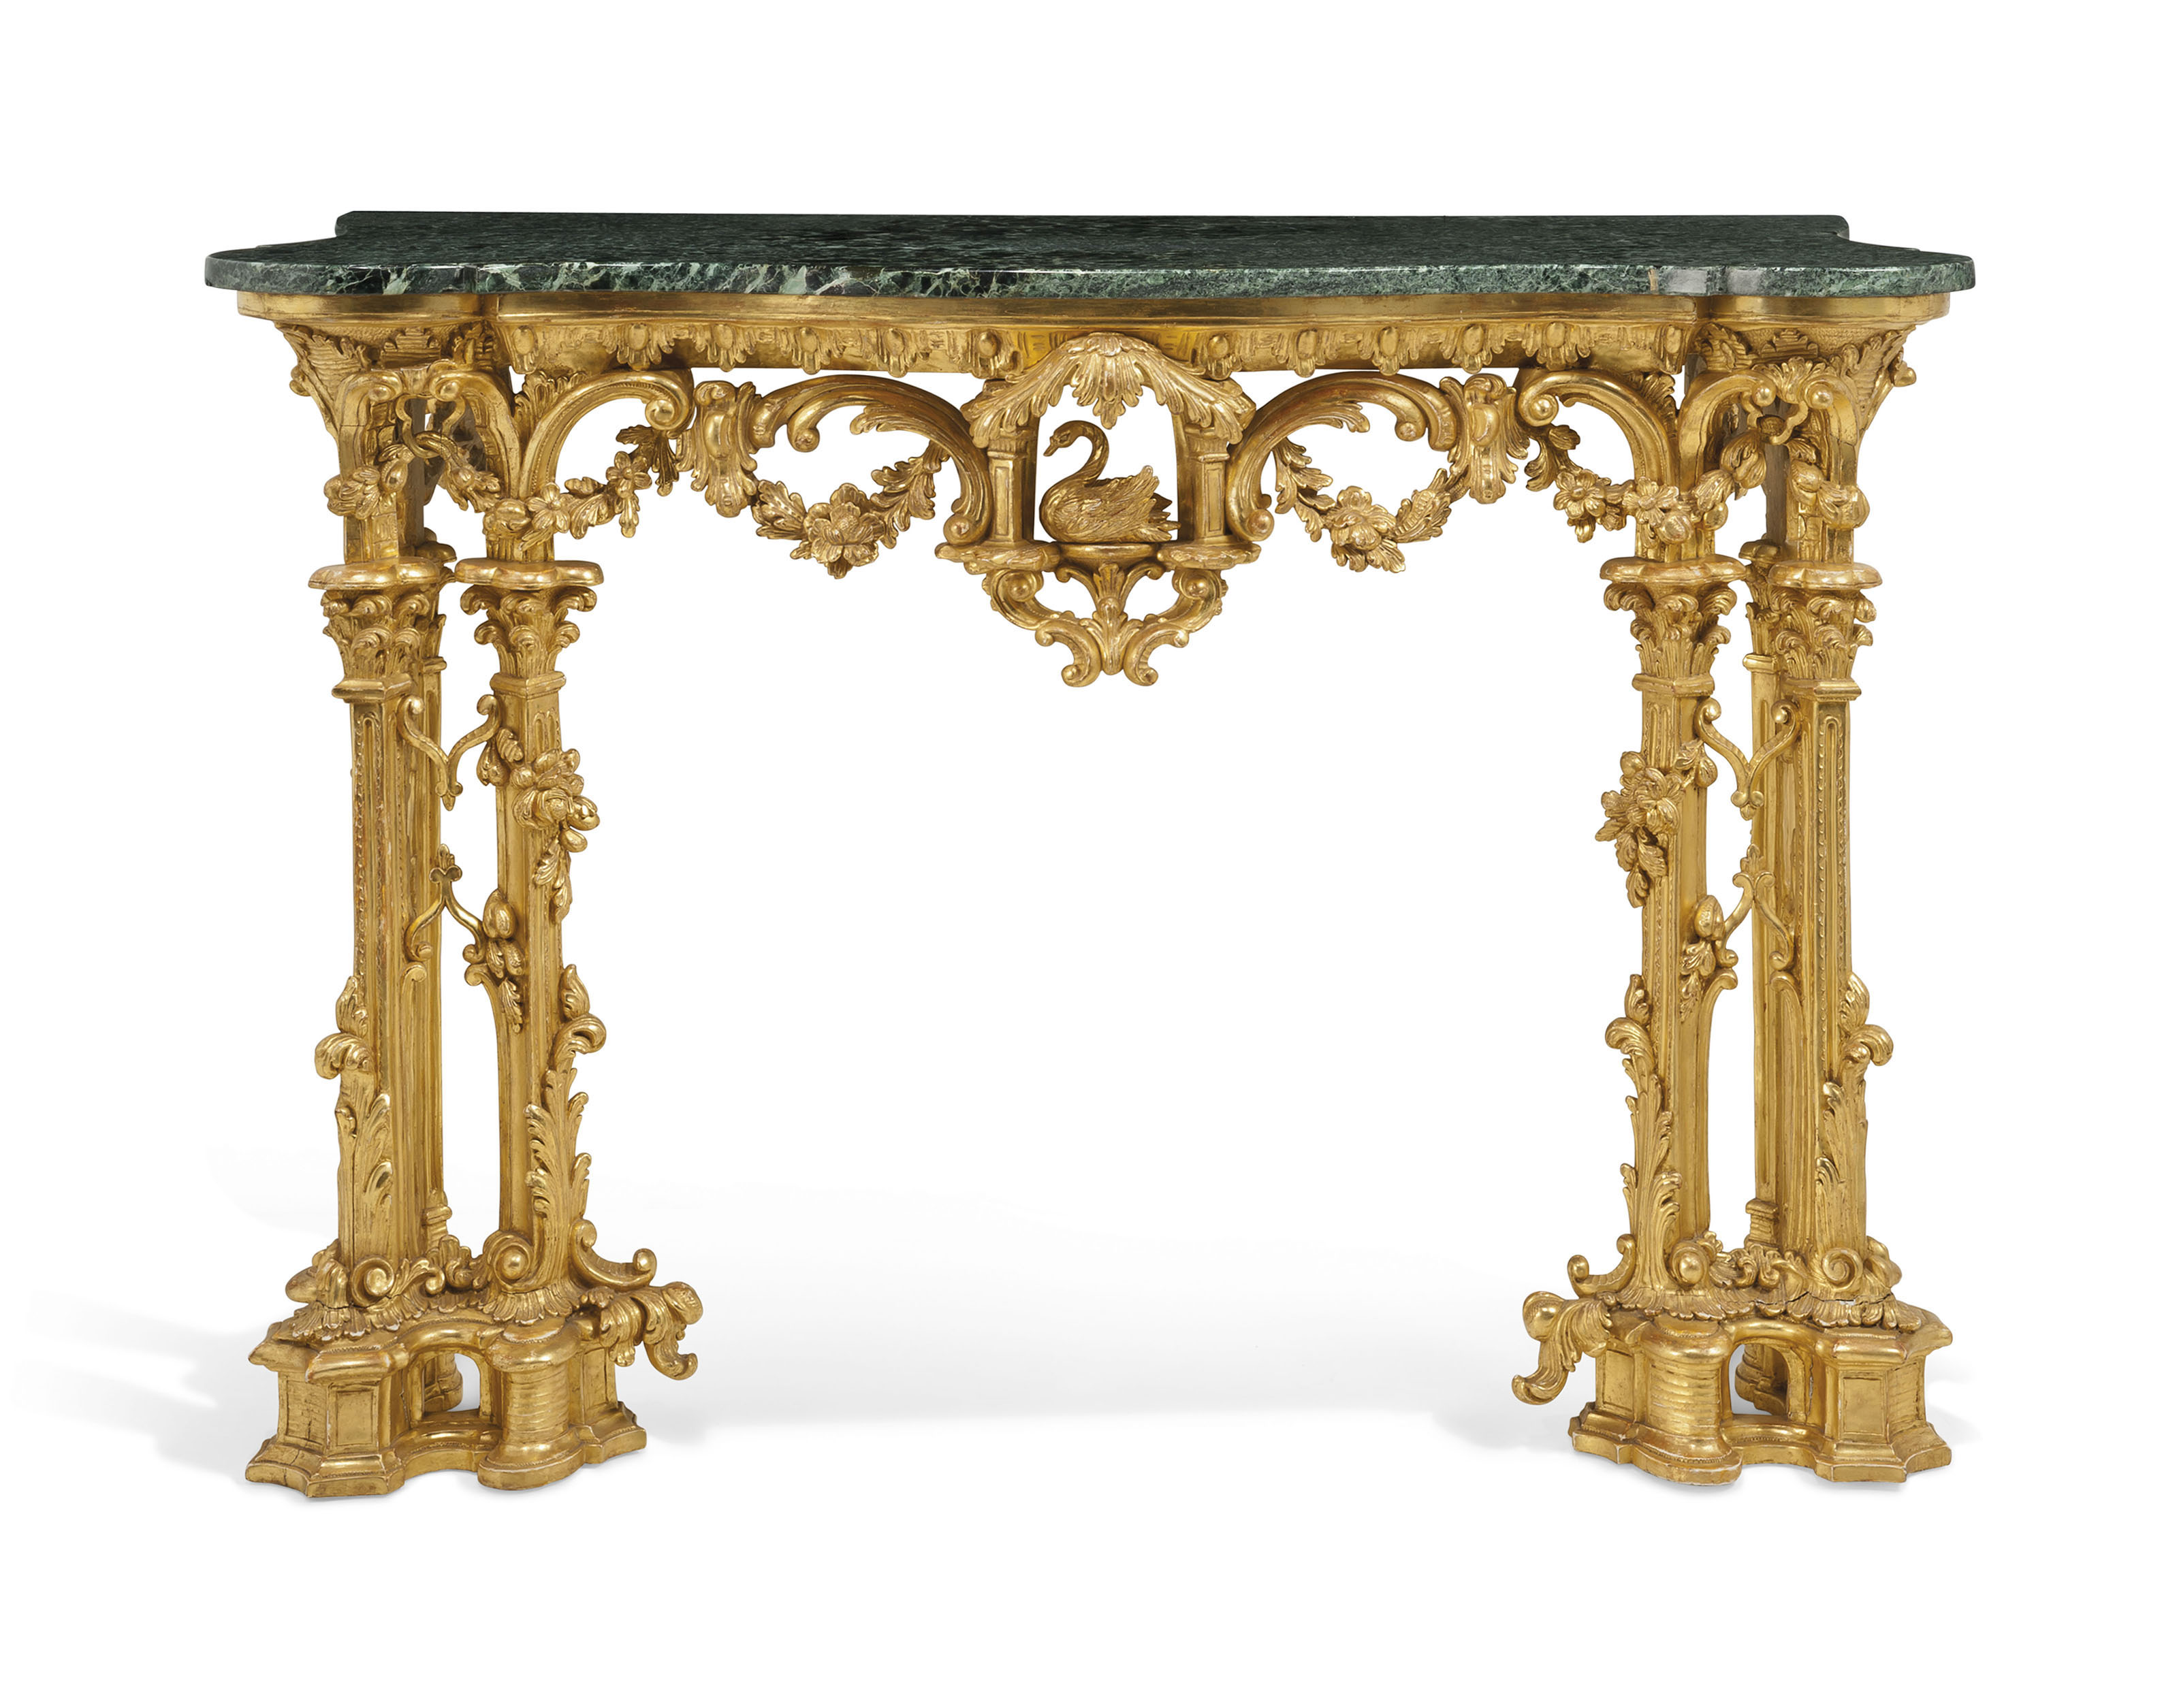 A GEORGE III GILTWOOD CONSOLE TABLE